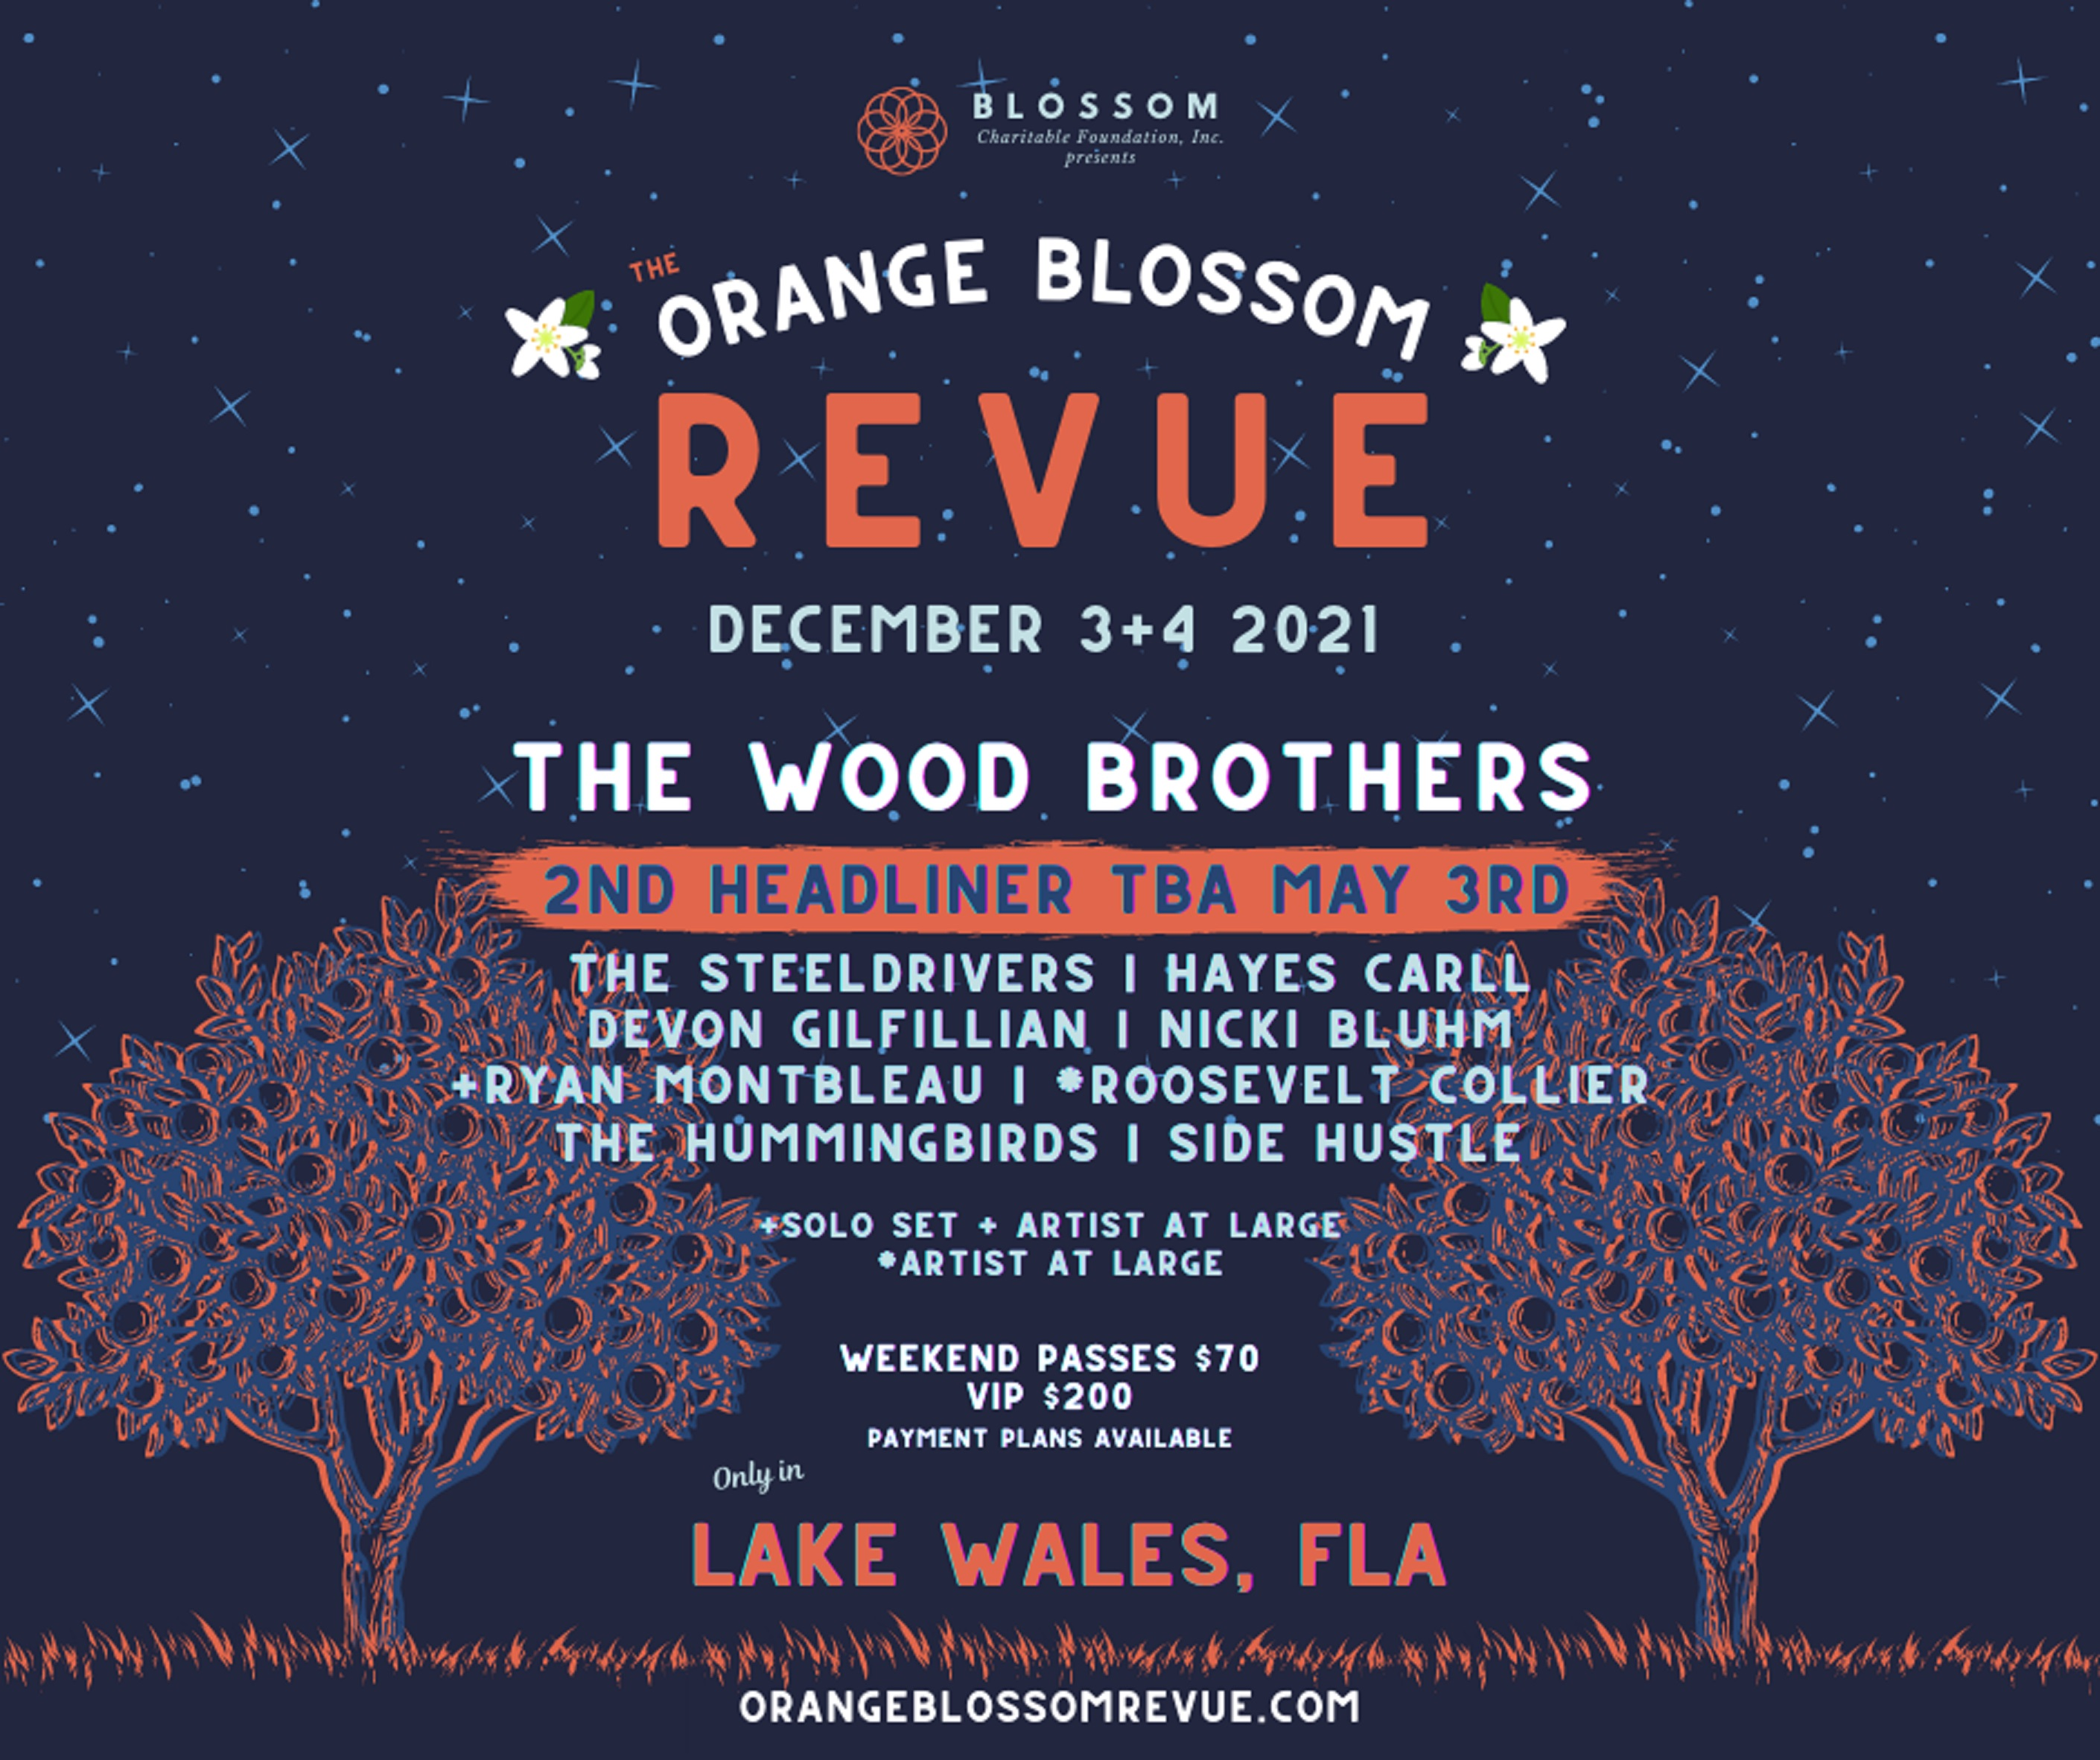 ORANGE BLOSSOM REVUE ANNOUNCES 2021 LINEUP